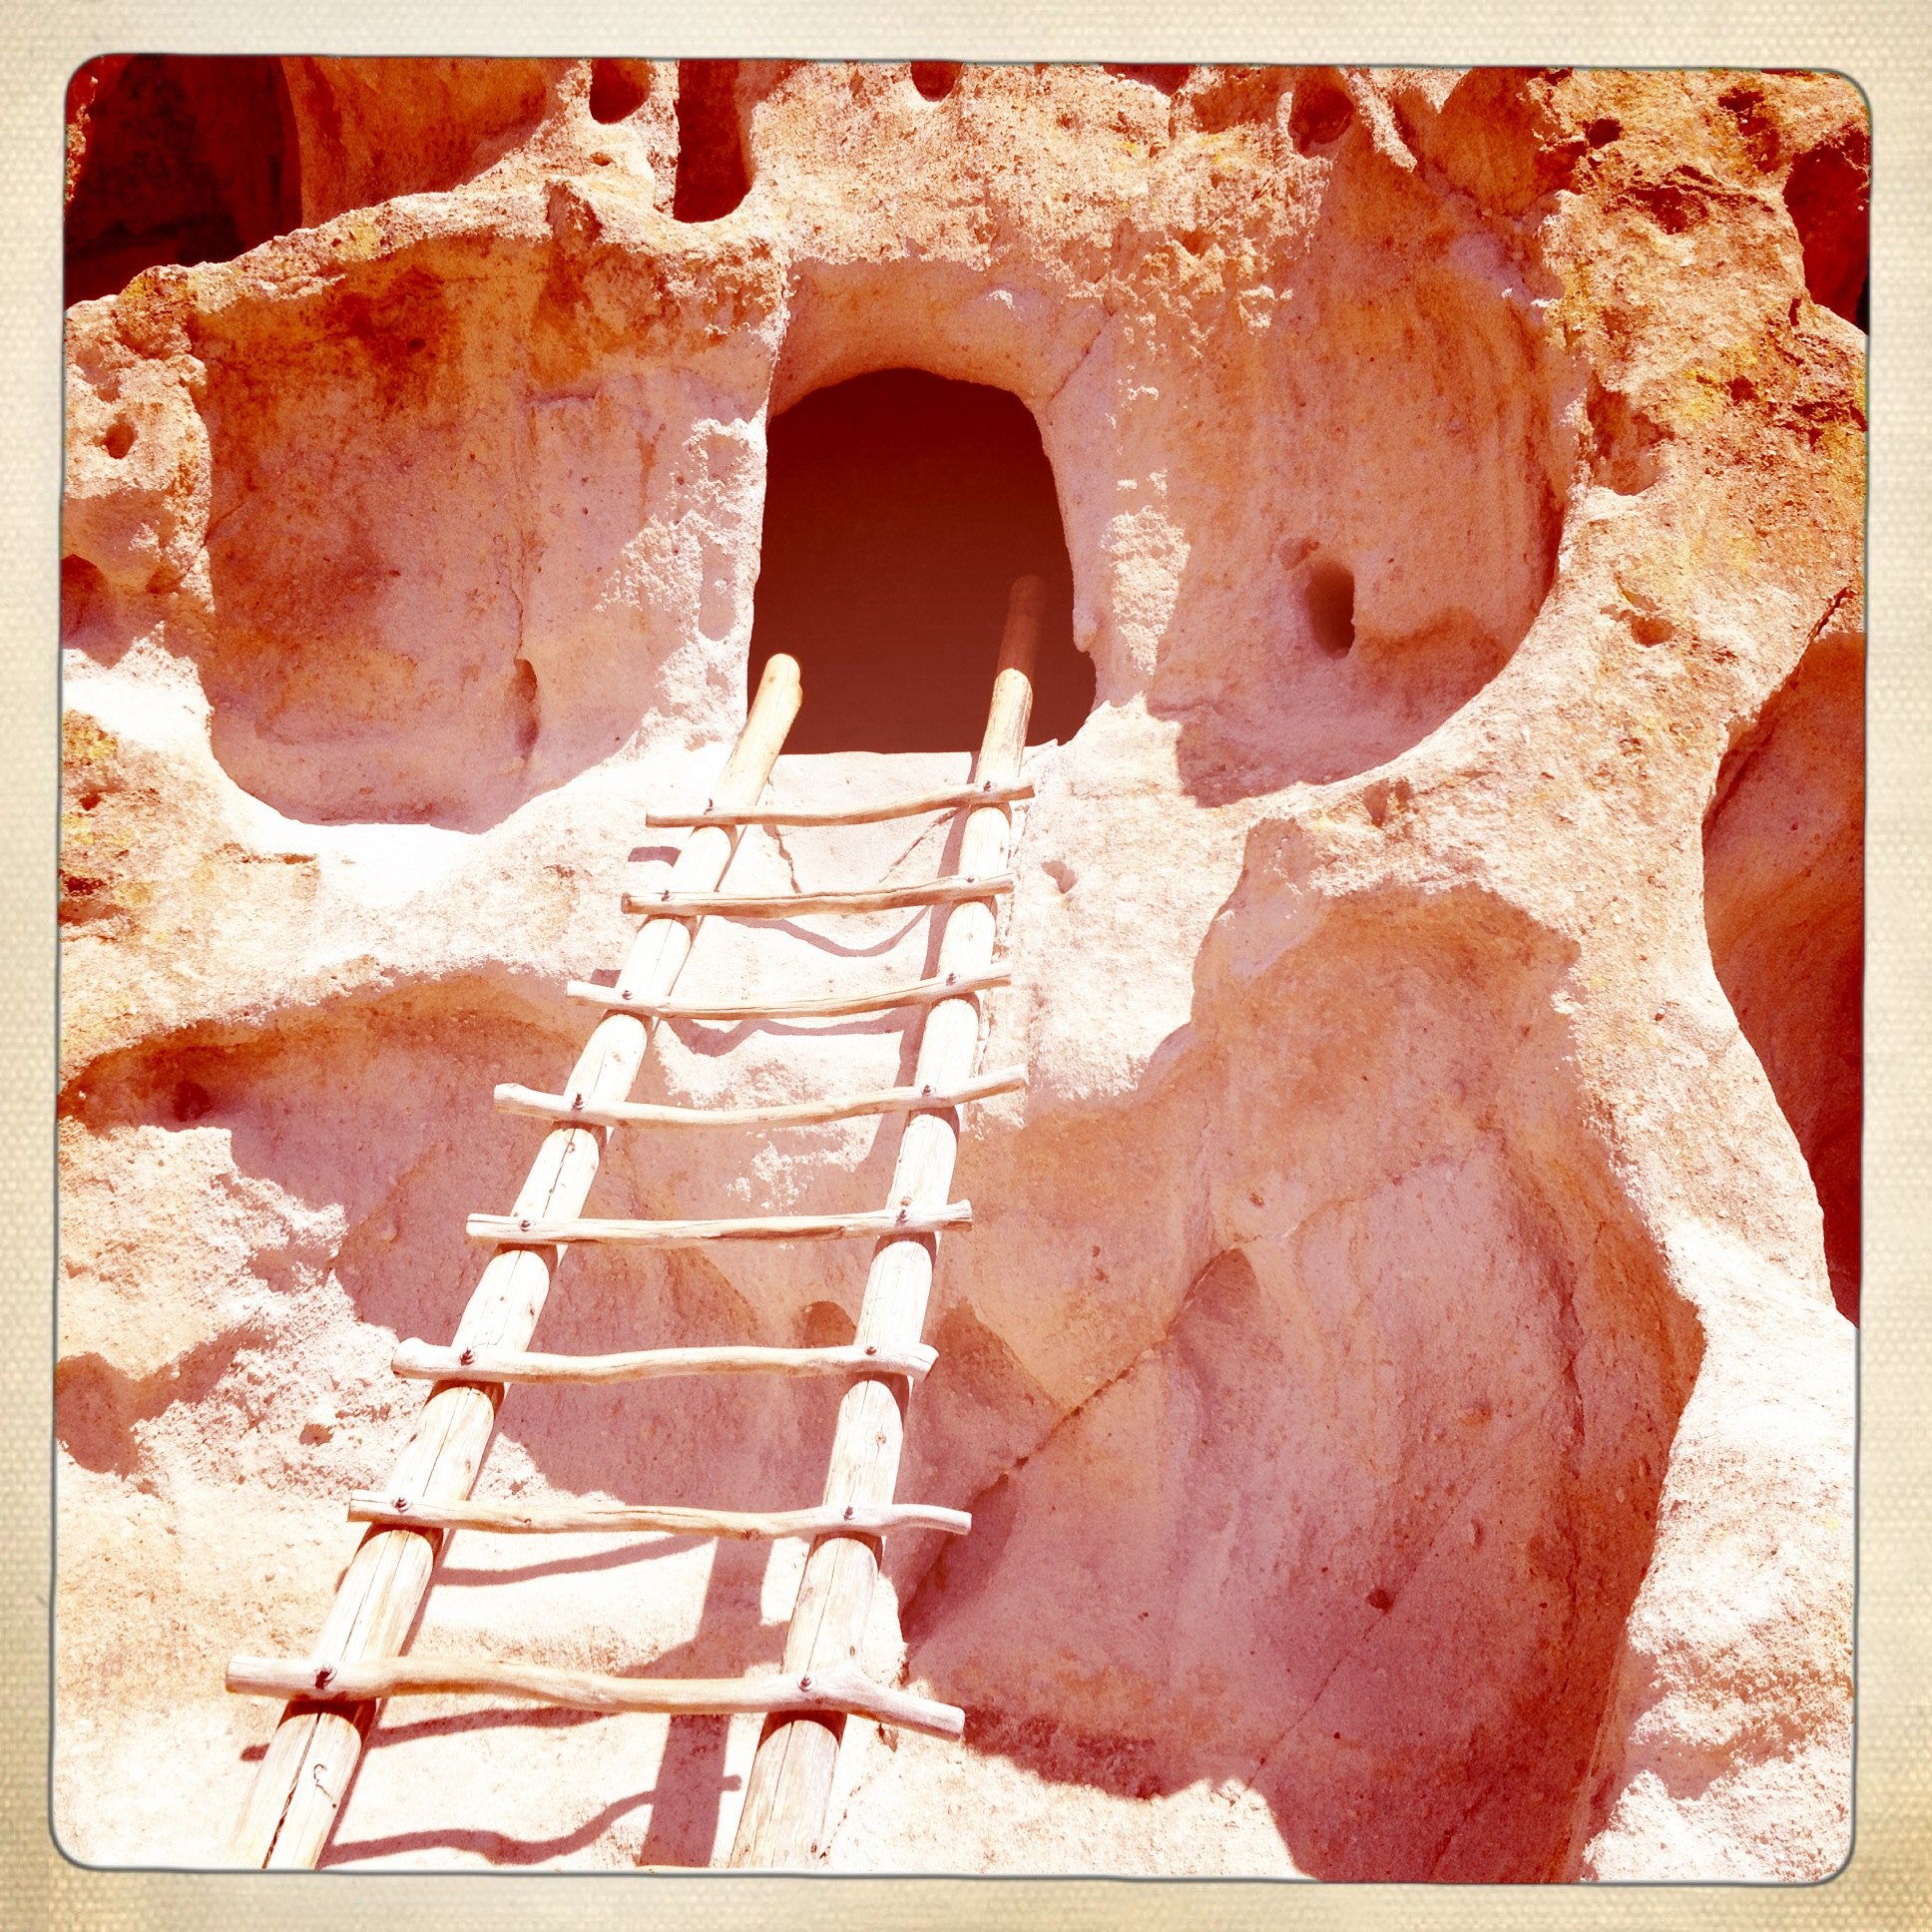 SANTA FE FOLK ART FESTIVAL PART 2:  BANDELIER NATIONAL PARK